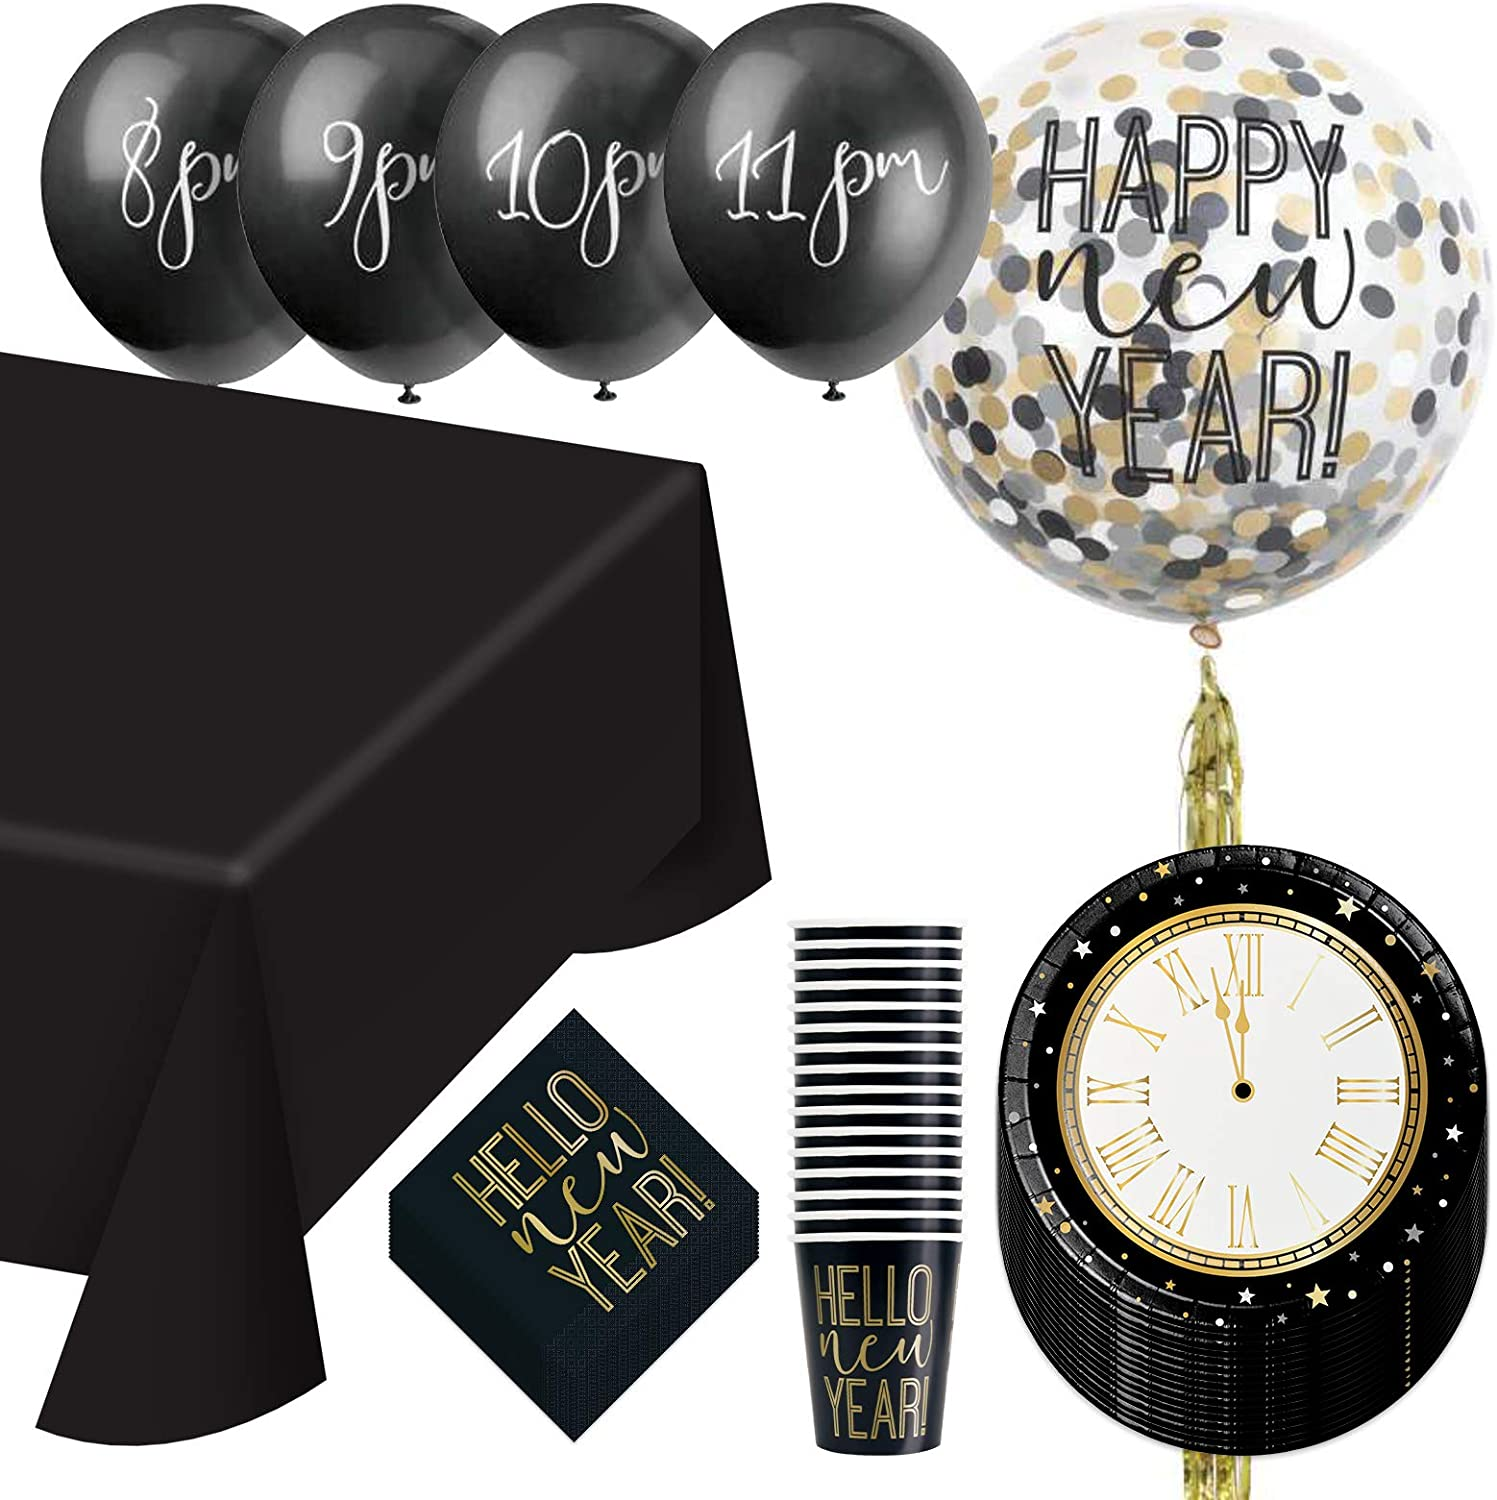 New Years Eve Countdown Dinner Party Pack - Paper Dinner Plates, Beverage Napkins, Cups, Table Cover, and Countdown Balloon Kit (Serves 16)